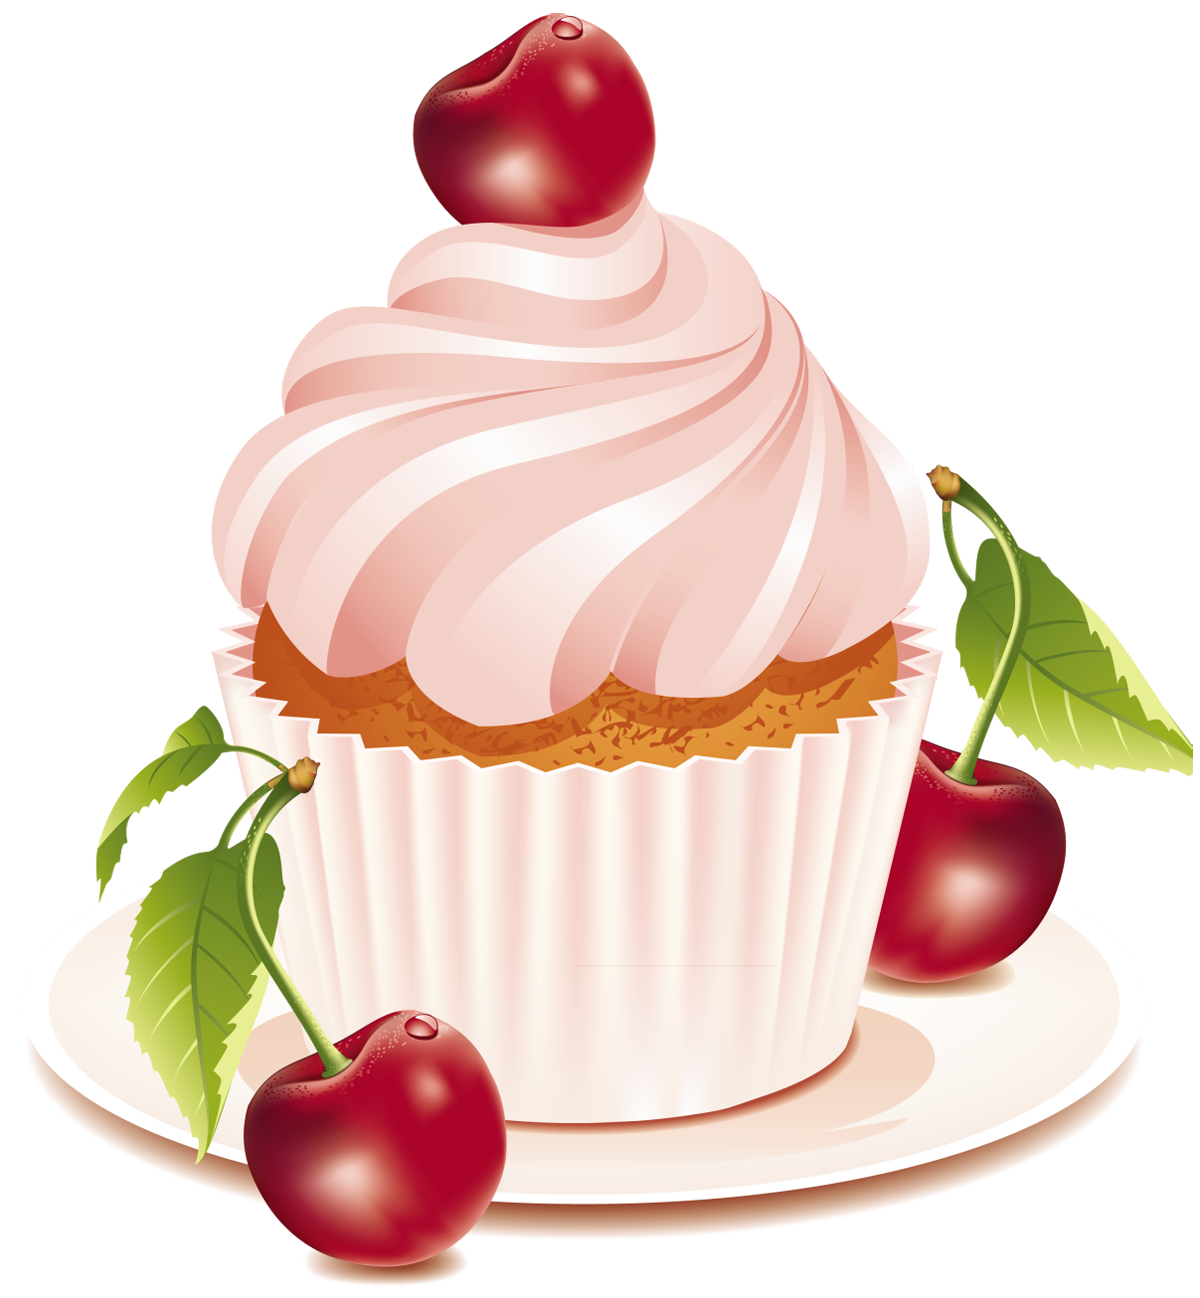 Pastry drawing vintage cookie. Cherry cake png clipart